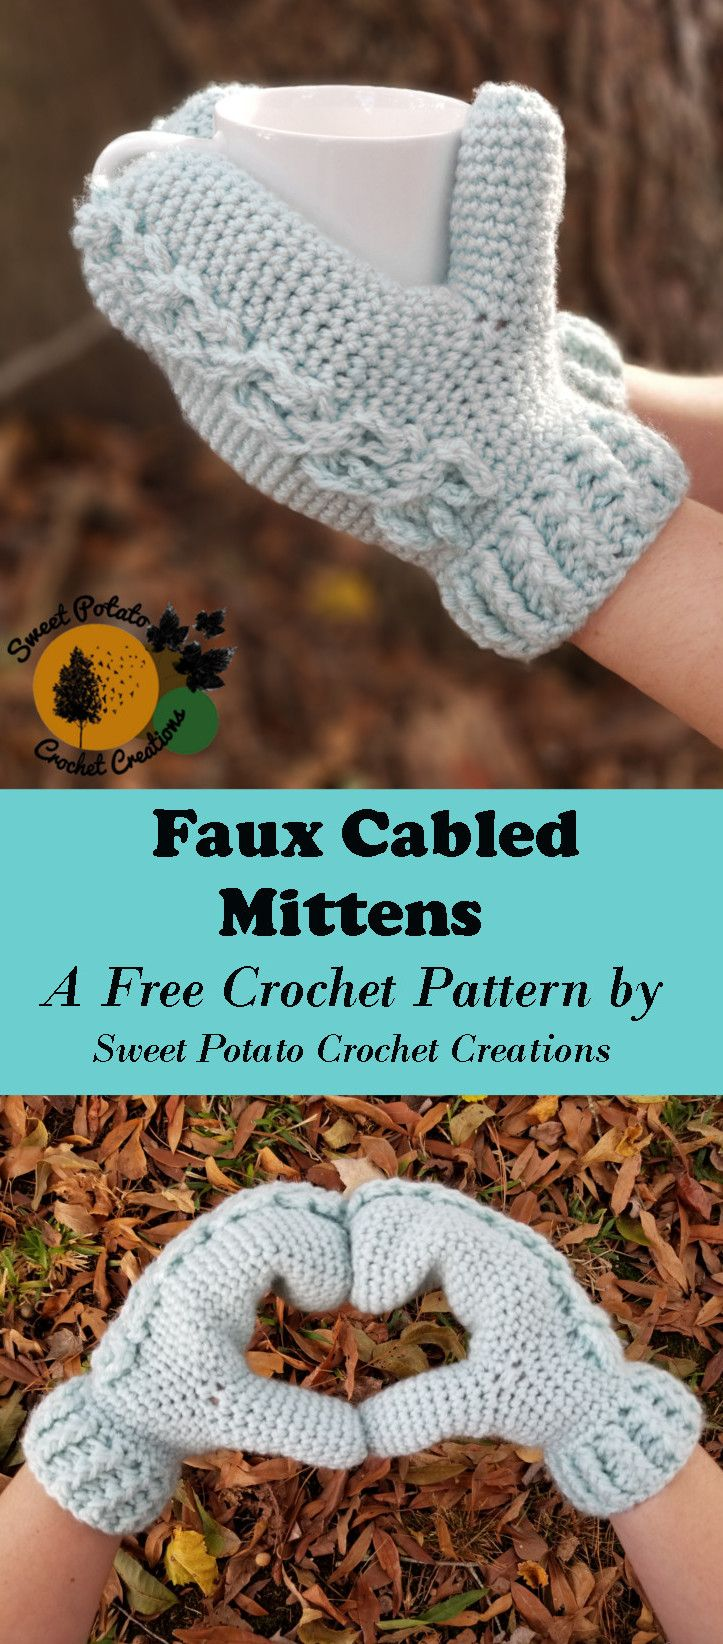 Crochet Mitten Drive-Faux Cabled Mittens